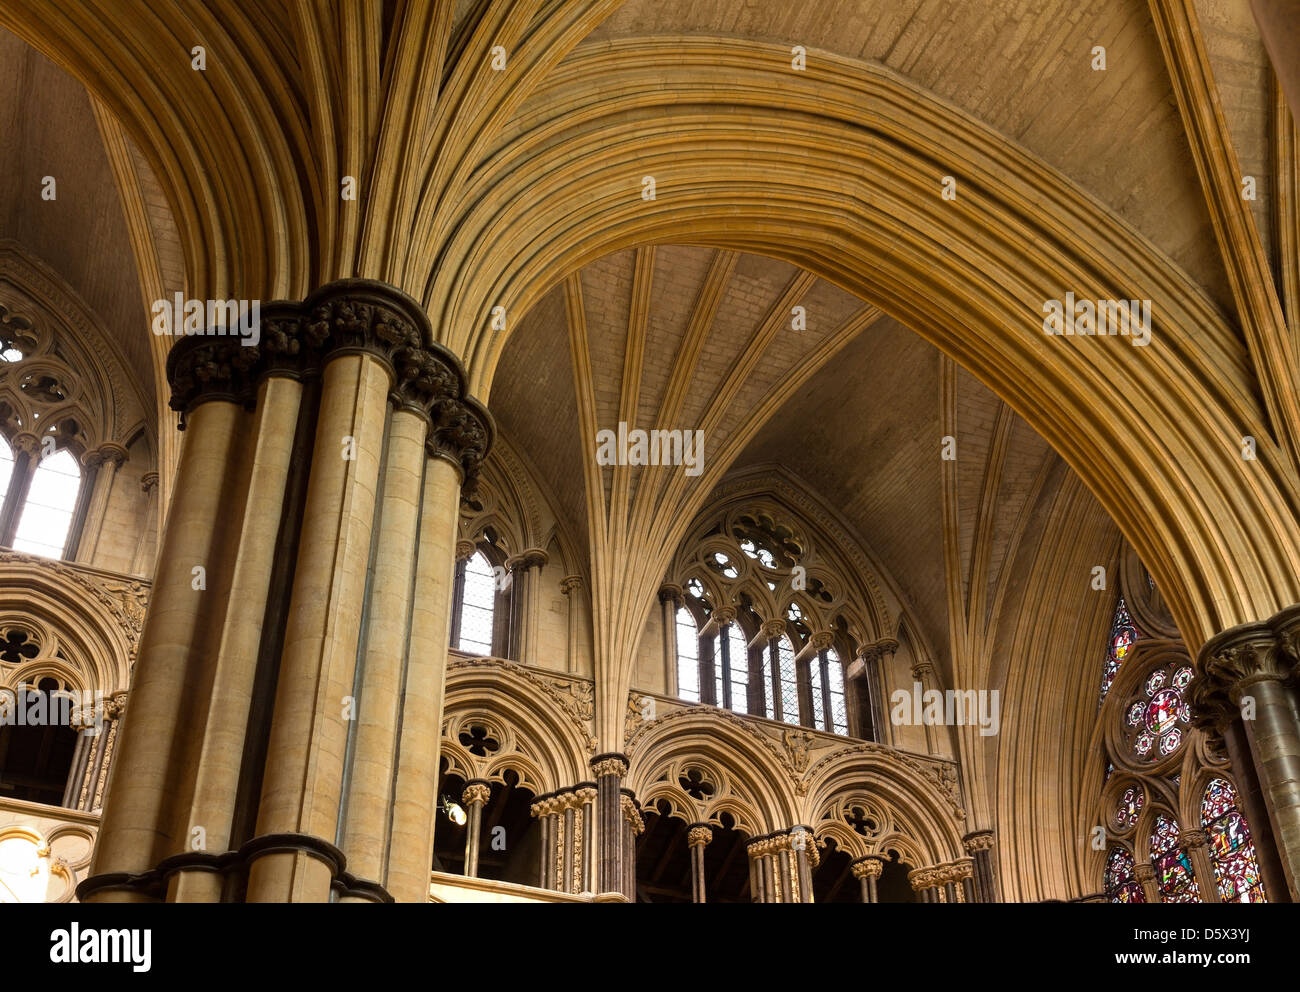 Pointed Gothic masonry arches, stone pillars and vaulted ceilings, Lincoln Cathedral, Lincolnshire, England, UK Stock Photo